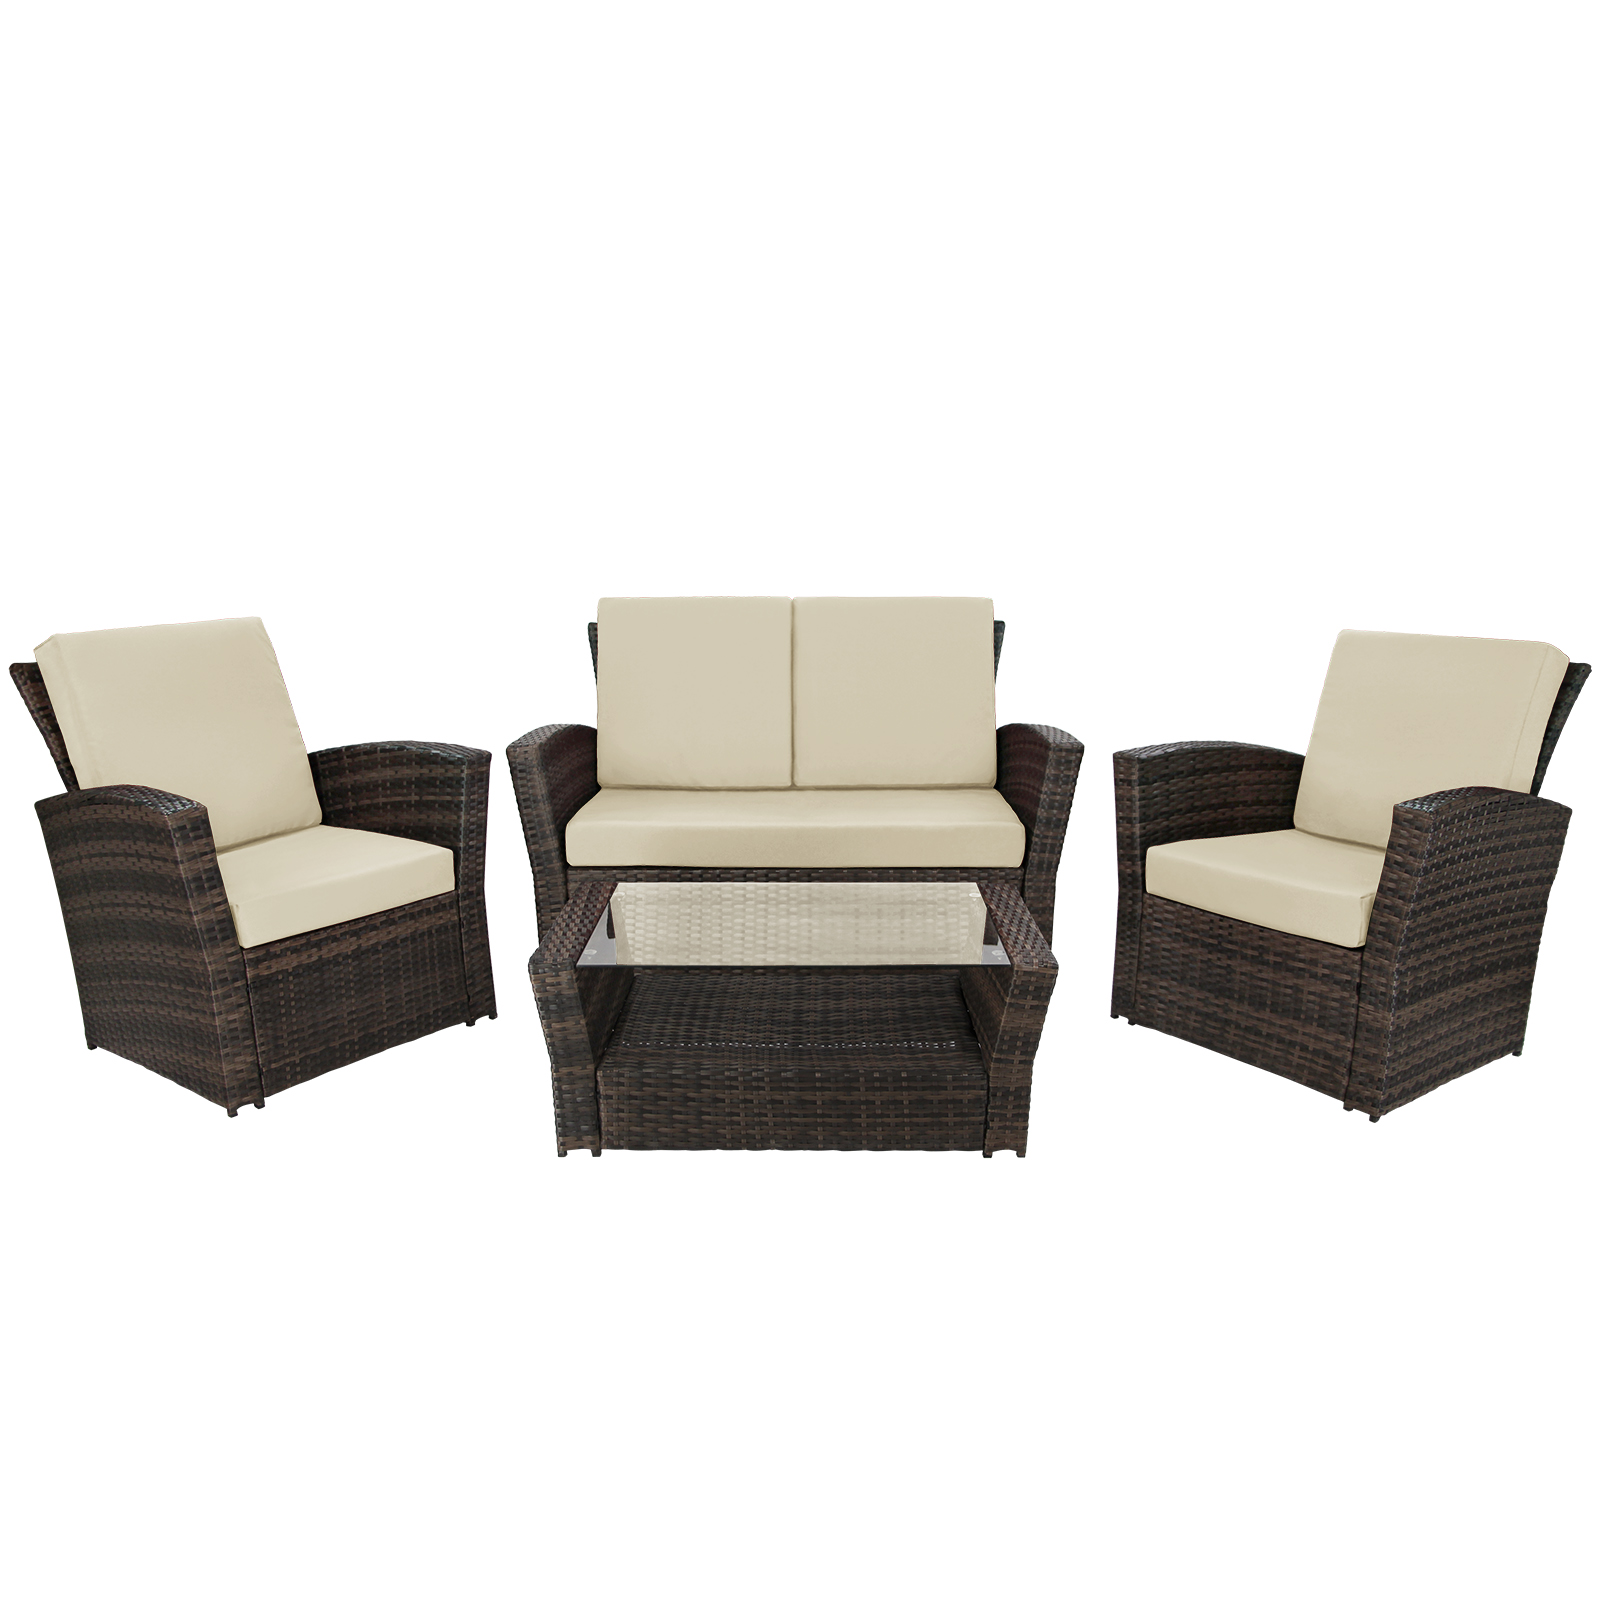 10 teilige polyrattan sitzgruppe lounge rio deluxe gartenm bel garnitur sessel ebay. Black Bedroom Furniture Sets. Home Design Ideas